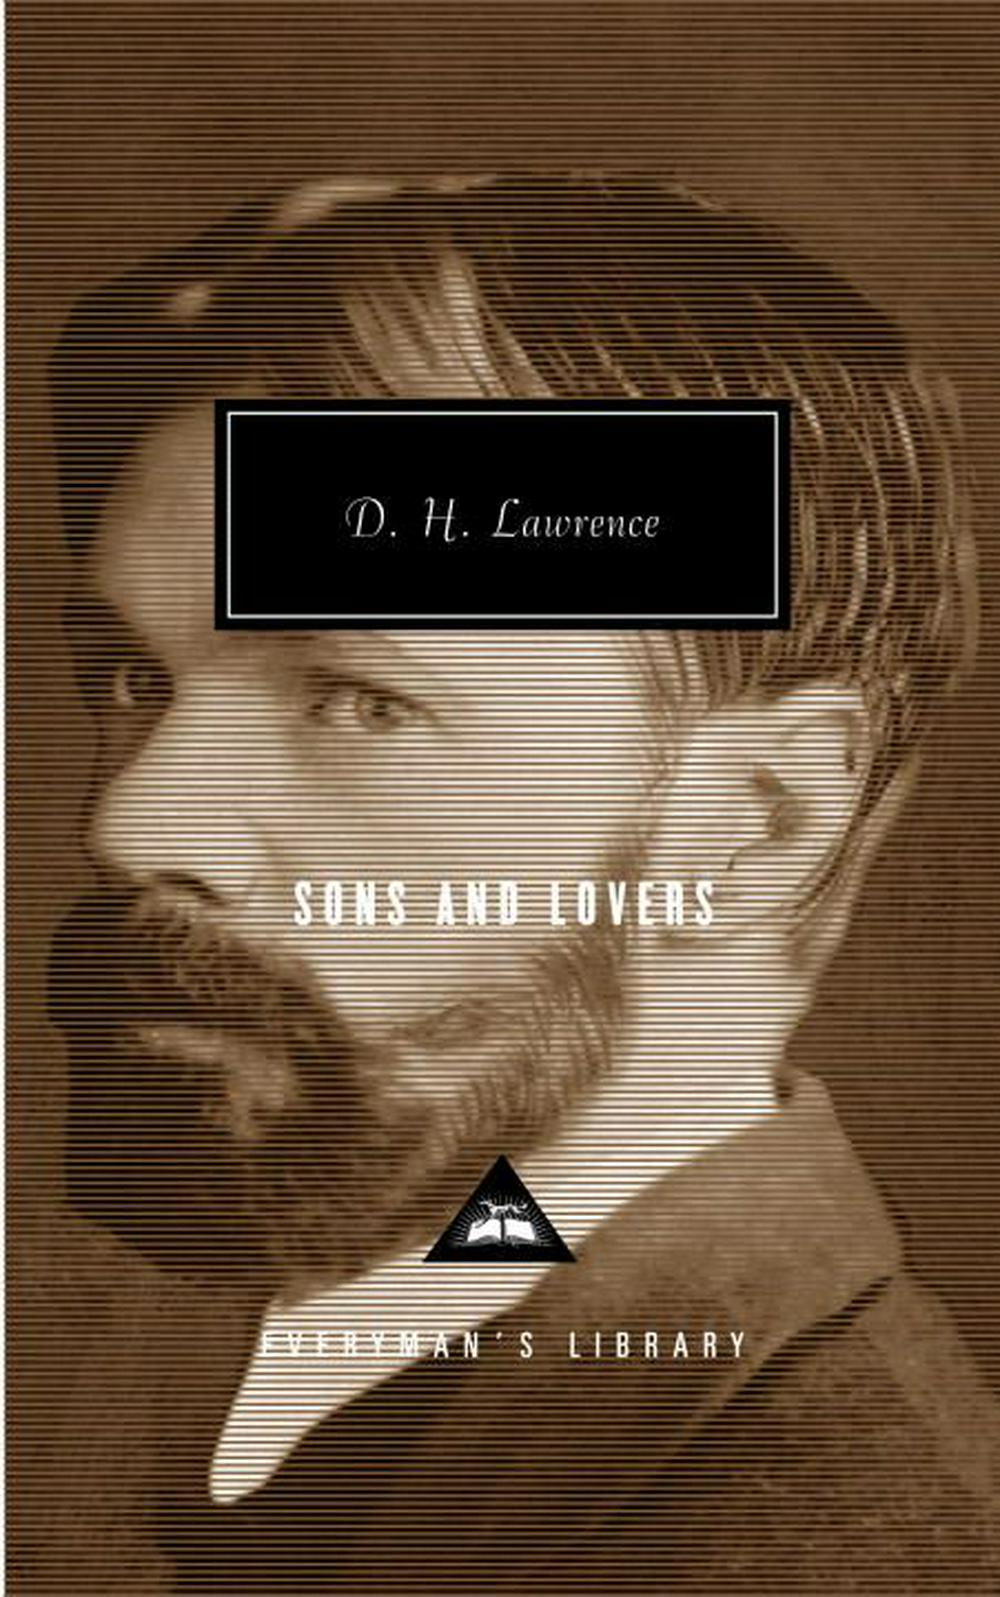 an introduction to the literature by d h lawrence A prolific poet, painter, and essayist, dh lawrence (1885-1930) is today best known for his novels, which remain popular with a general reading public in part because he maintained conventional syntax and grammar and fairly straightforward plots, such as the chronicle of several generations in.